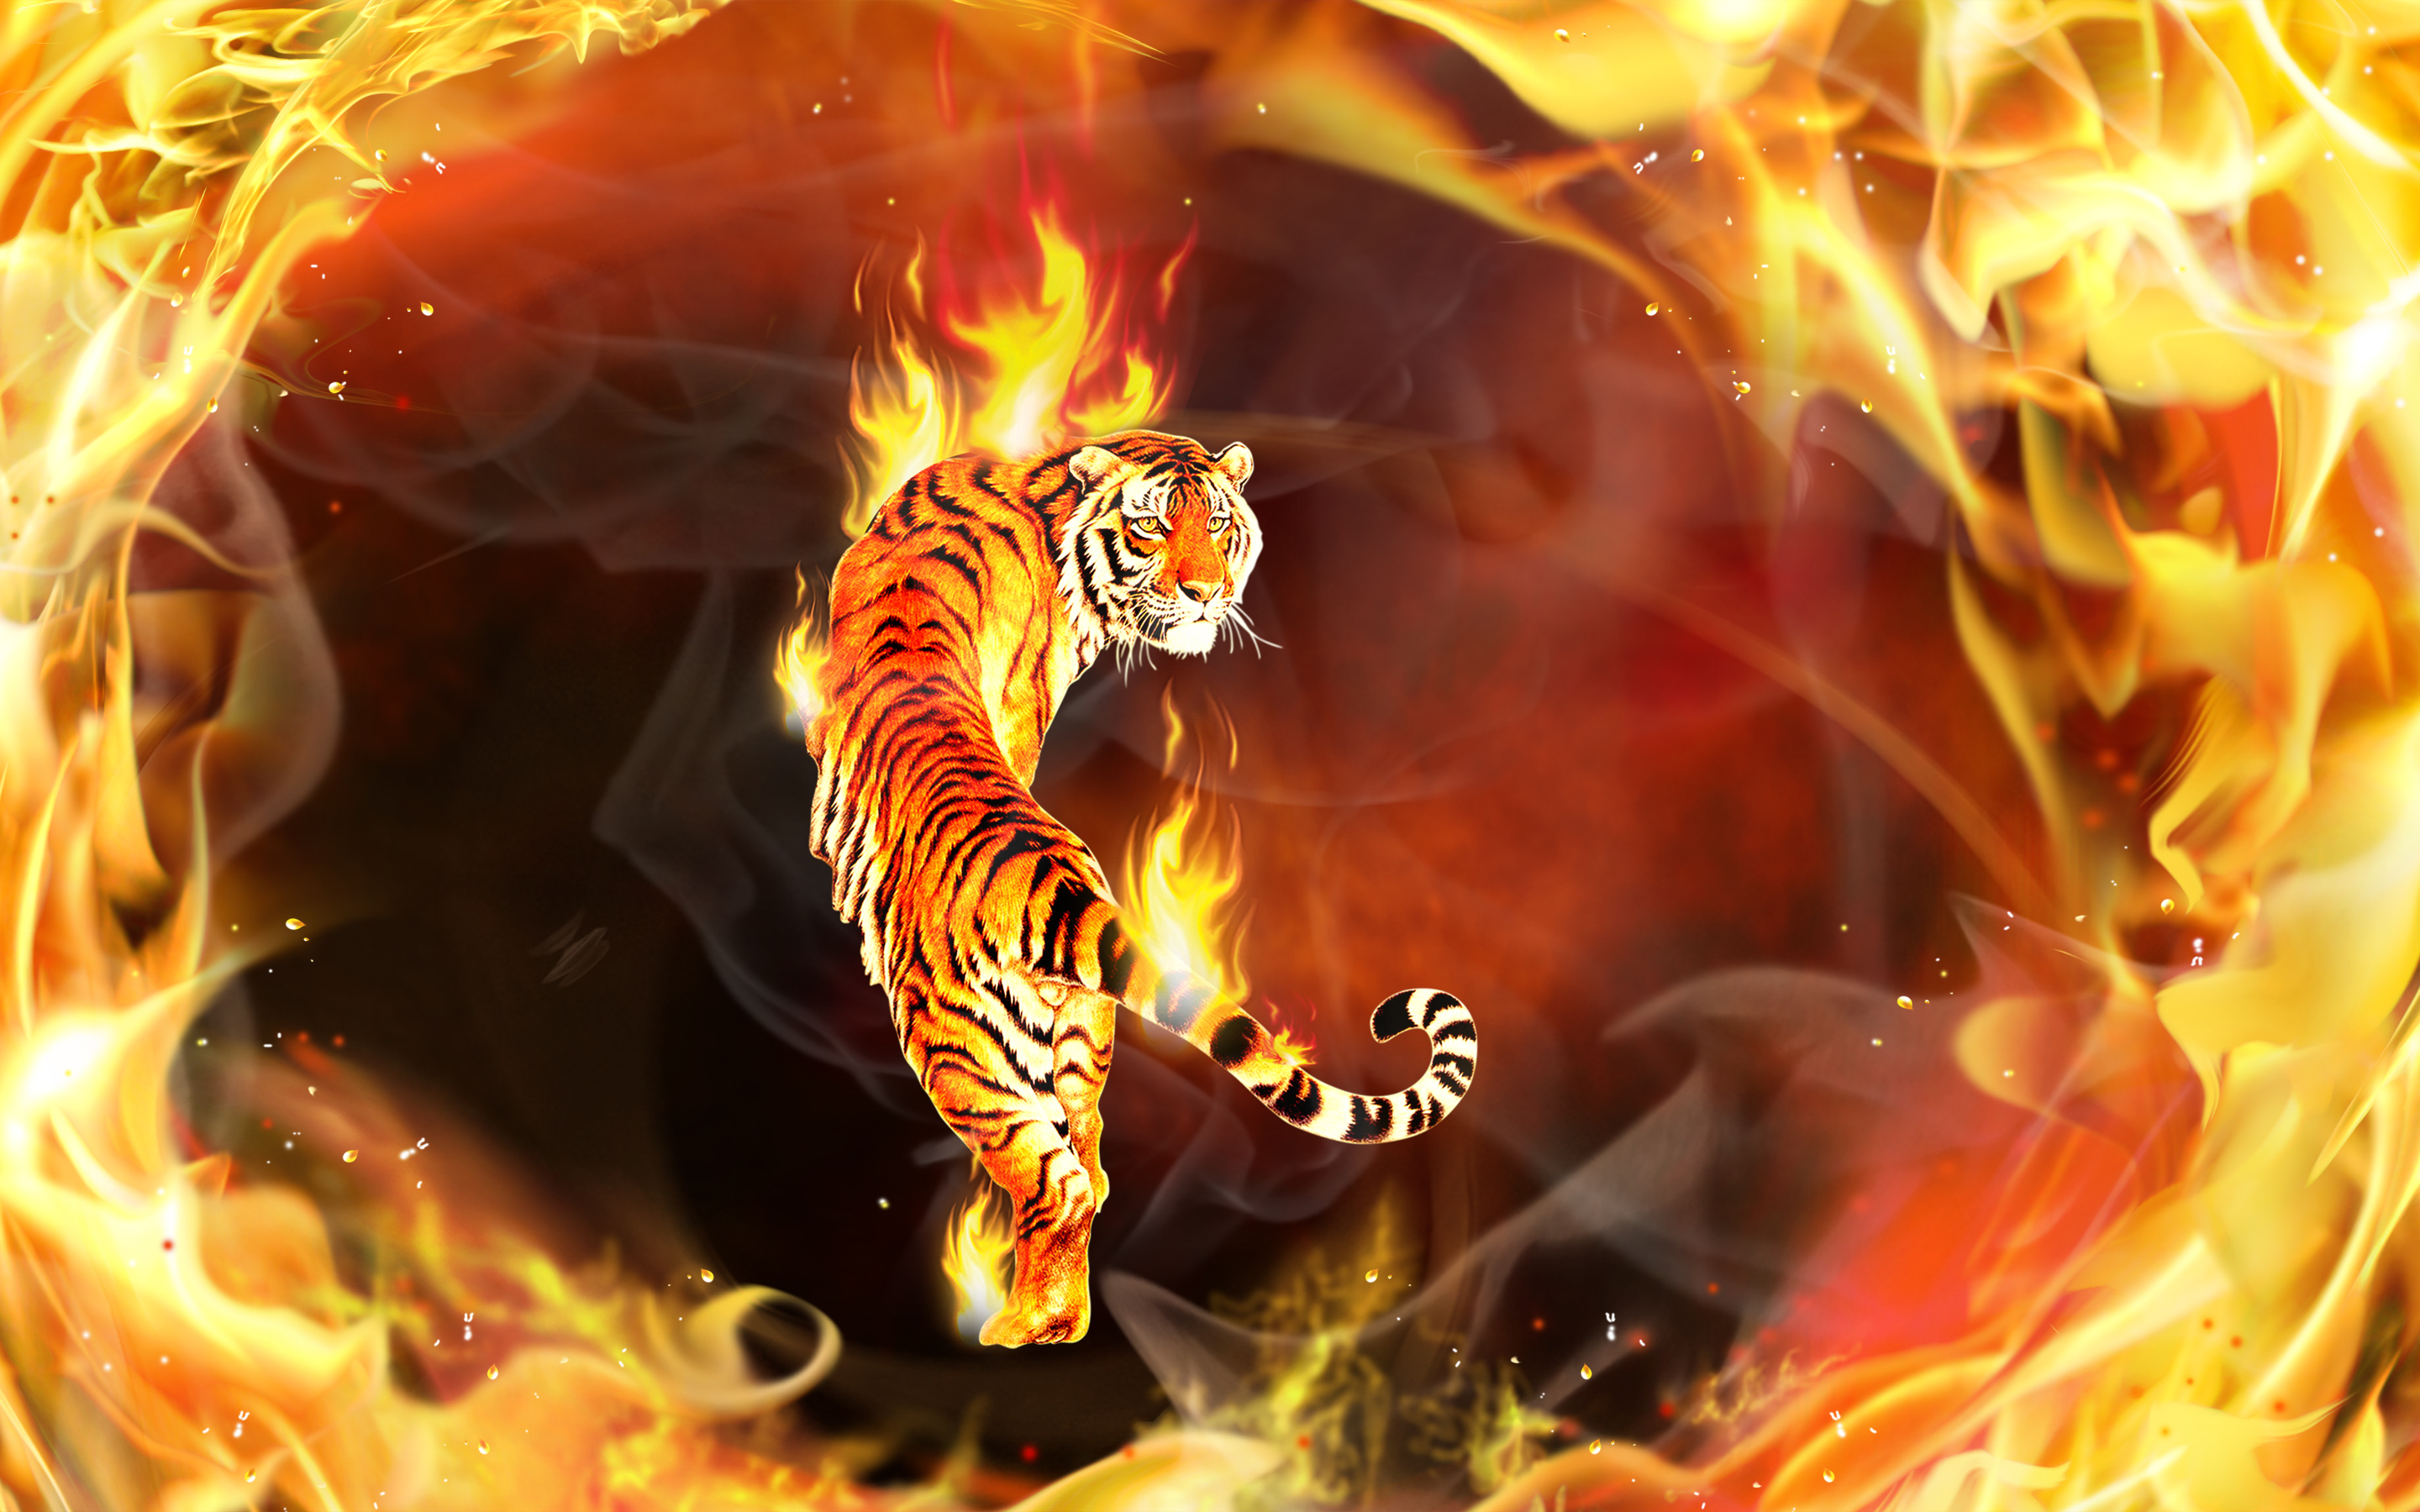 Tiger CGI Digital Art 3D Psychedelic Fire Flame Abstract Wallpaper 2880x1800